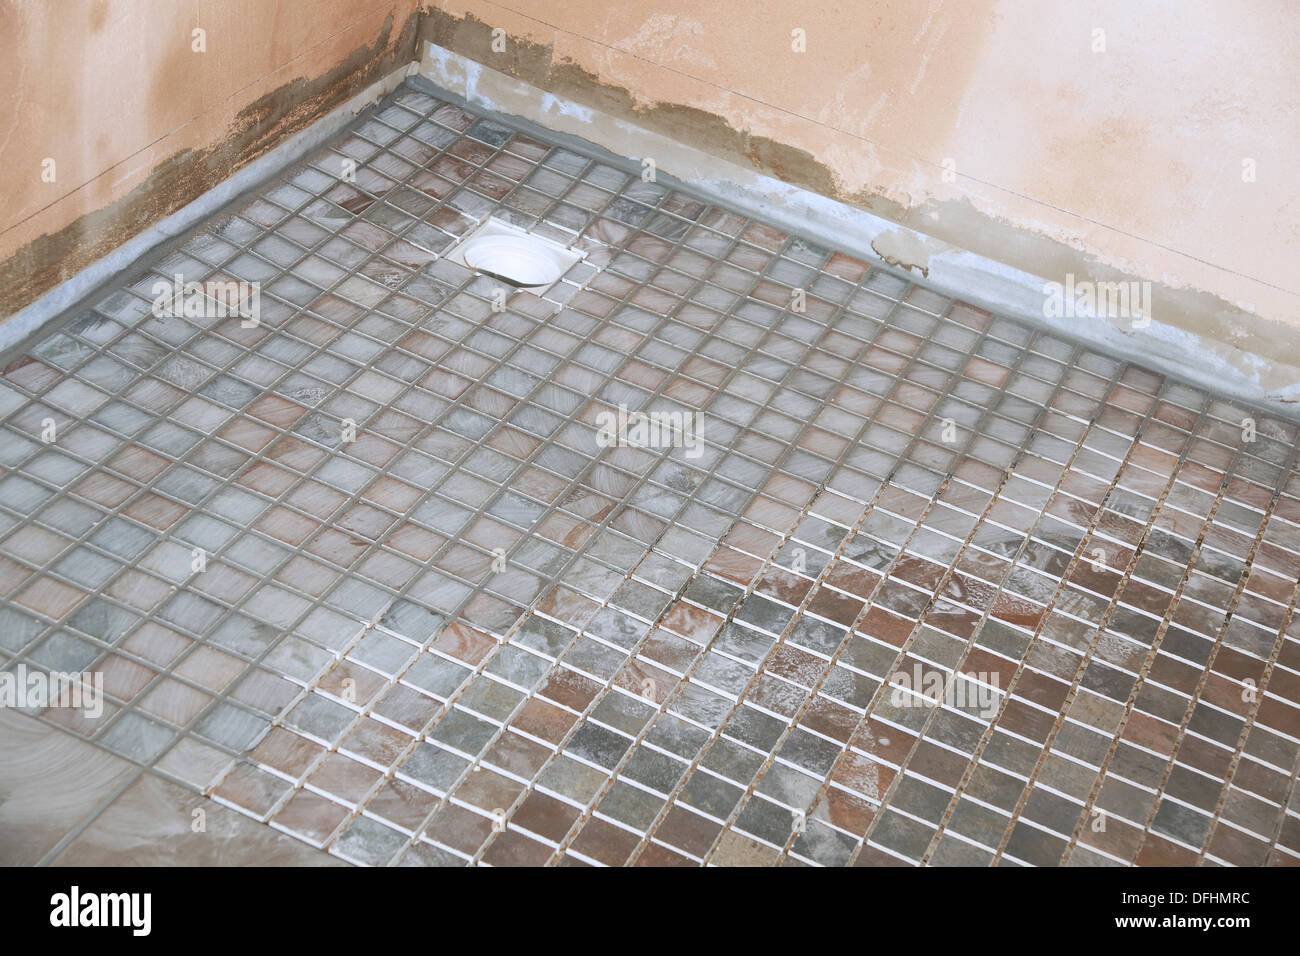 Non Slip Tiles Used For The Flooring In A Wet Room Shower